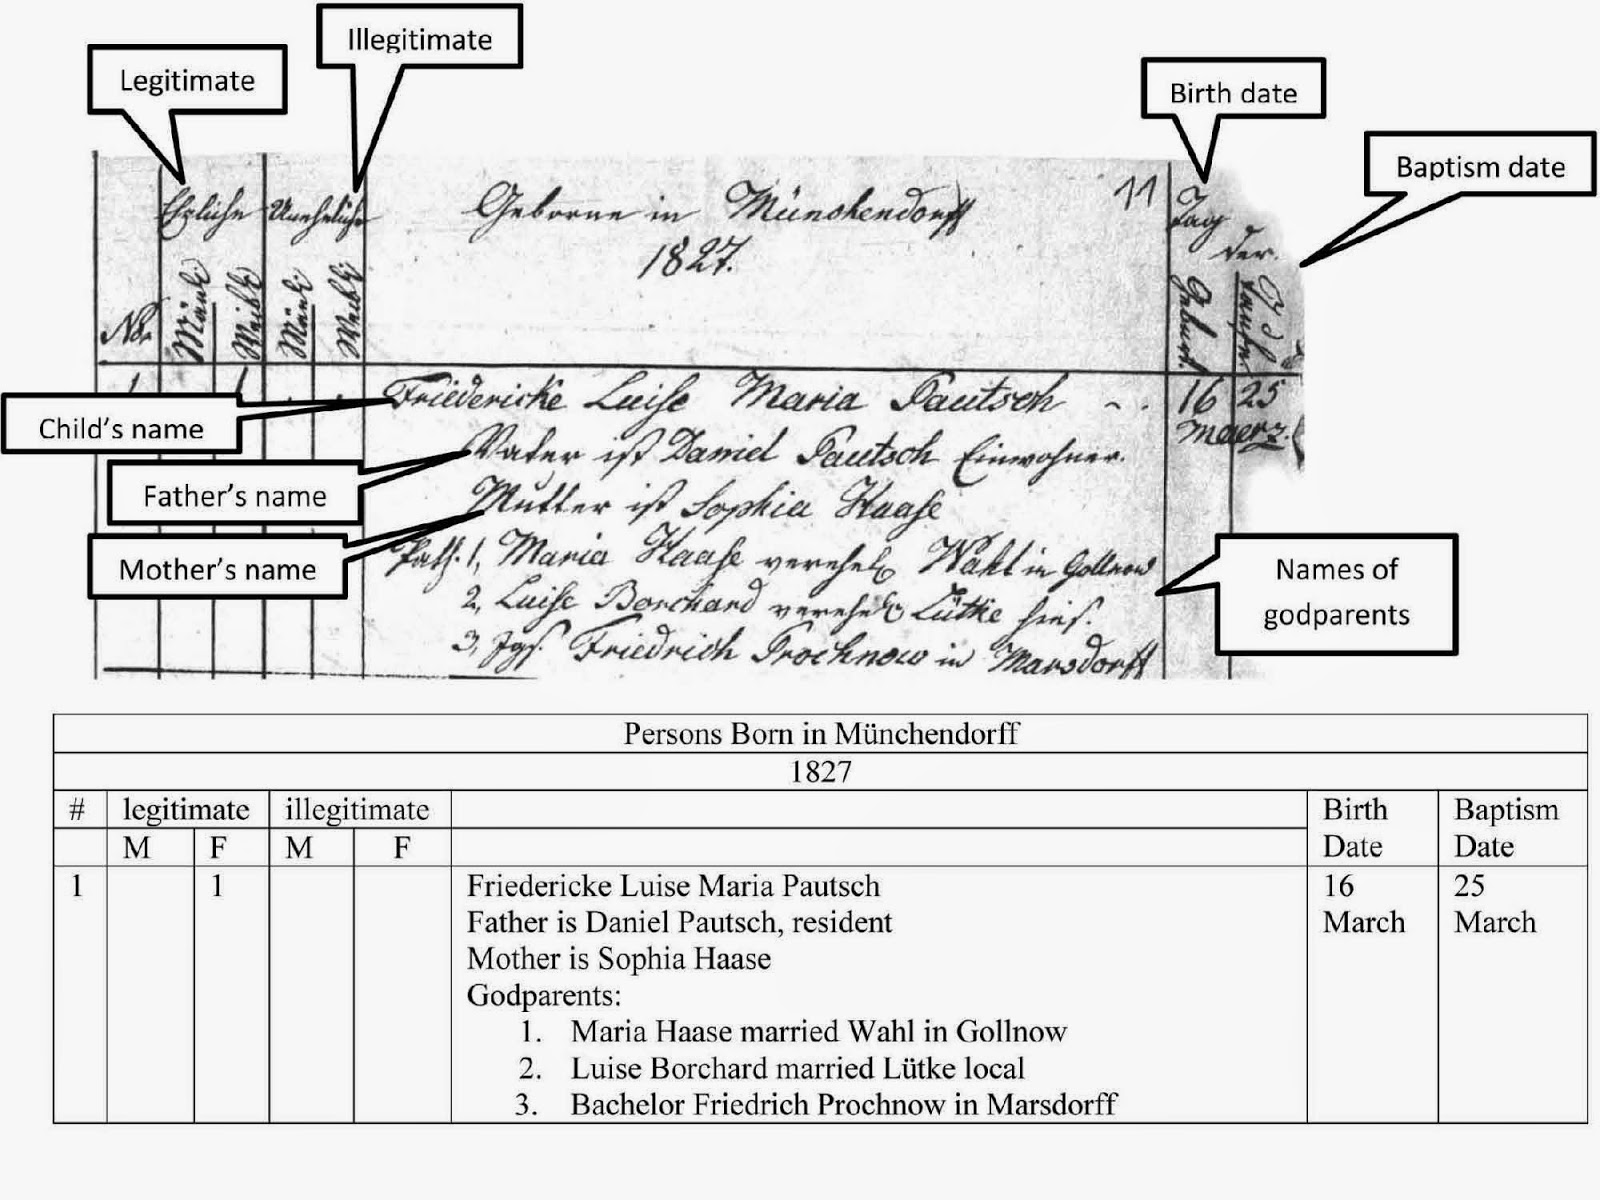 Baltimore county maryland genealogy learn familysearch org - Https Familysearch Org Learn Wiki En Germany _pomerania_church_records_ Familysearch_historical_records